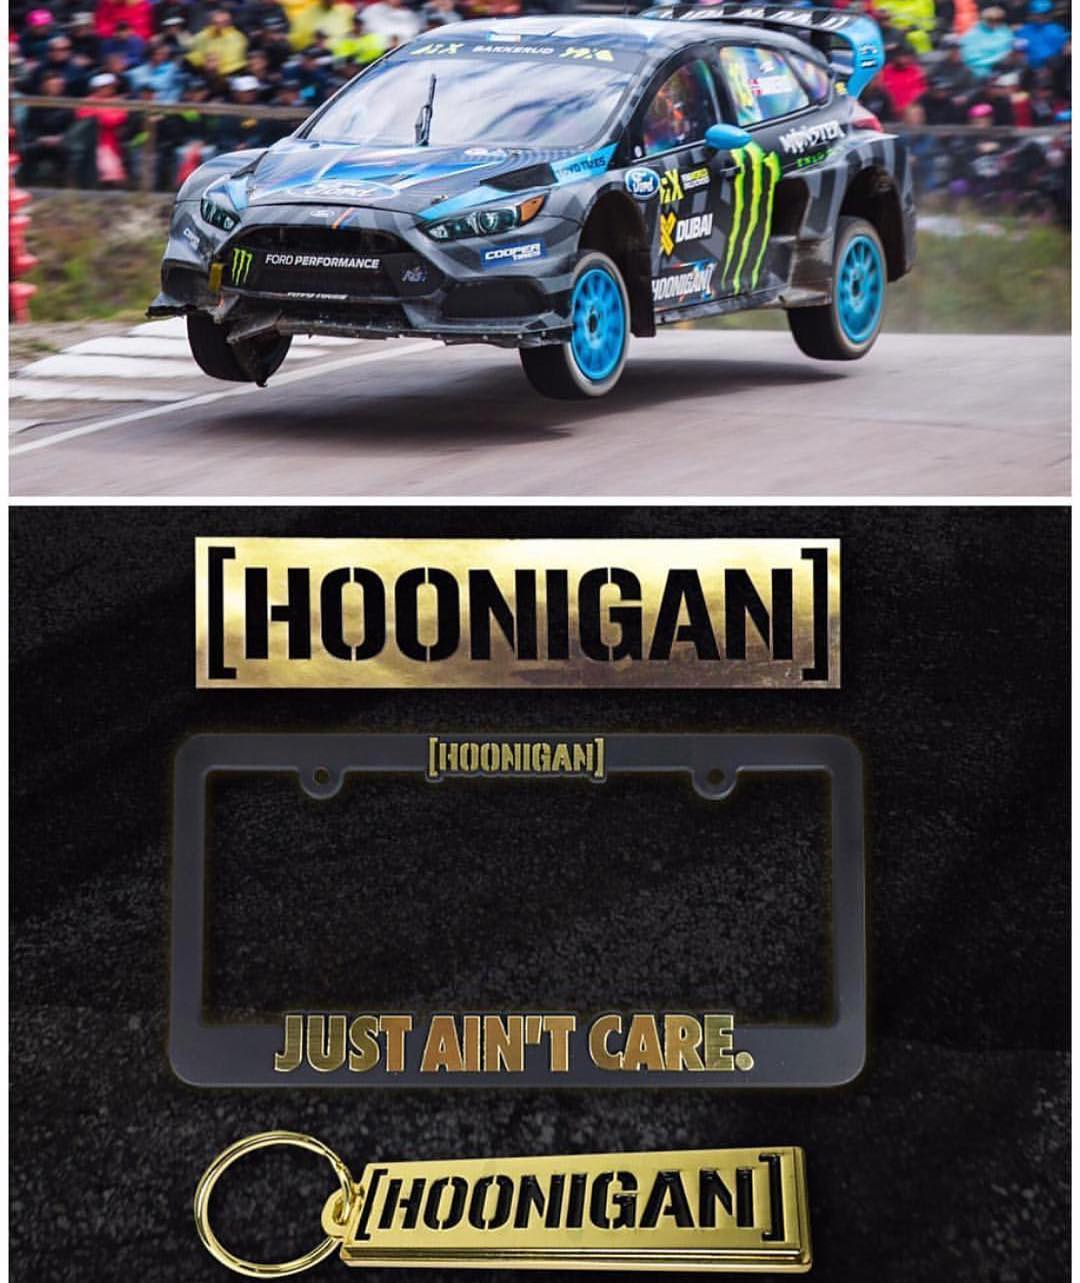 The clock is ticking on #GOLDSTICKERTIME: back to back 1st place finishes for our dude @andreasbakkerud! As usual - when we win, you win! Since AB is shredding so hard we are spicing up #Goldstickertime with extra goodies. You get a FREE gold HNGN...